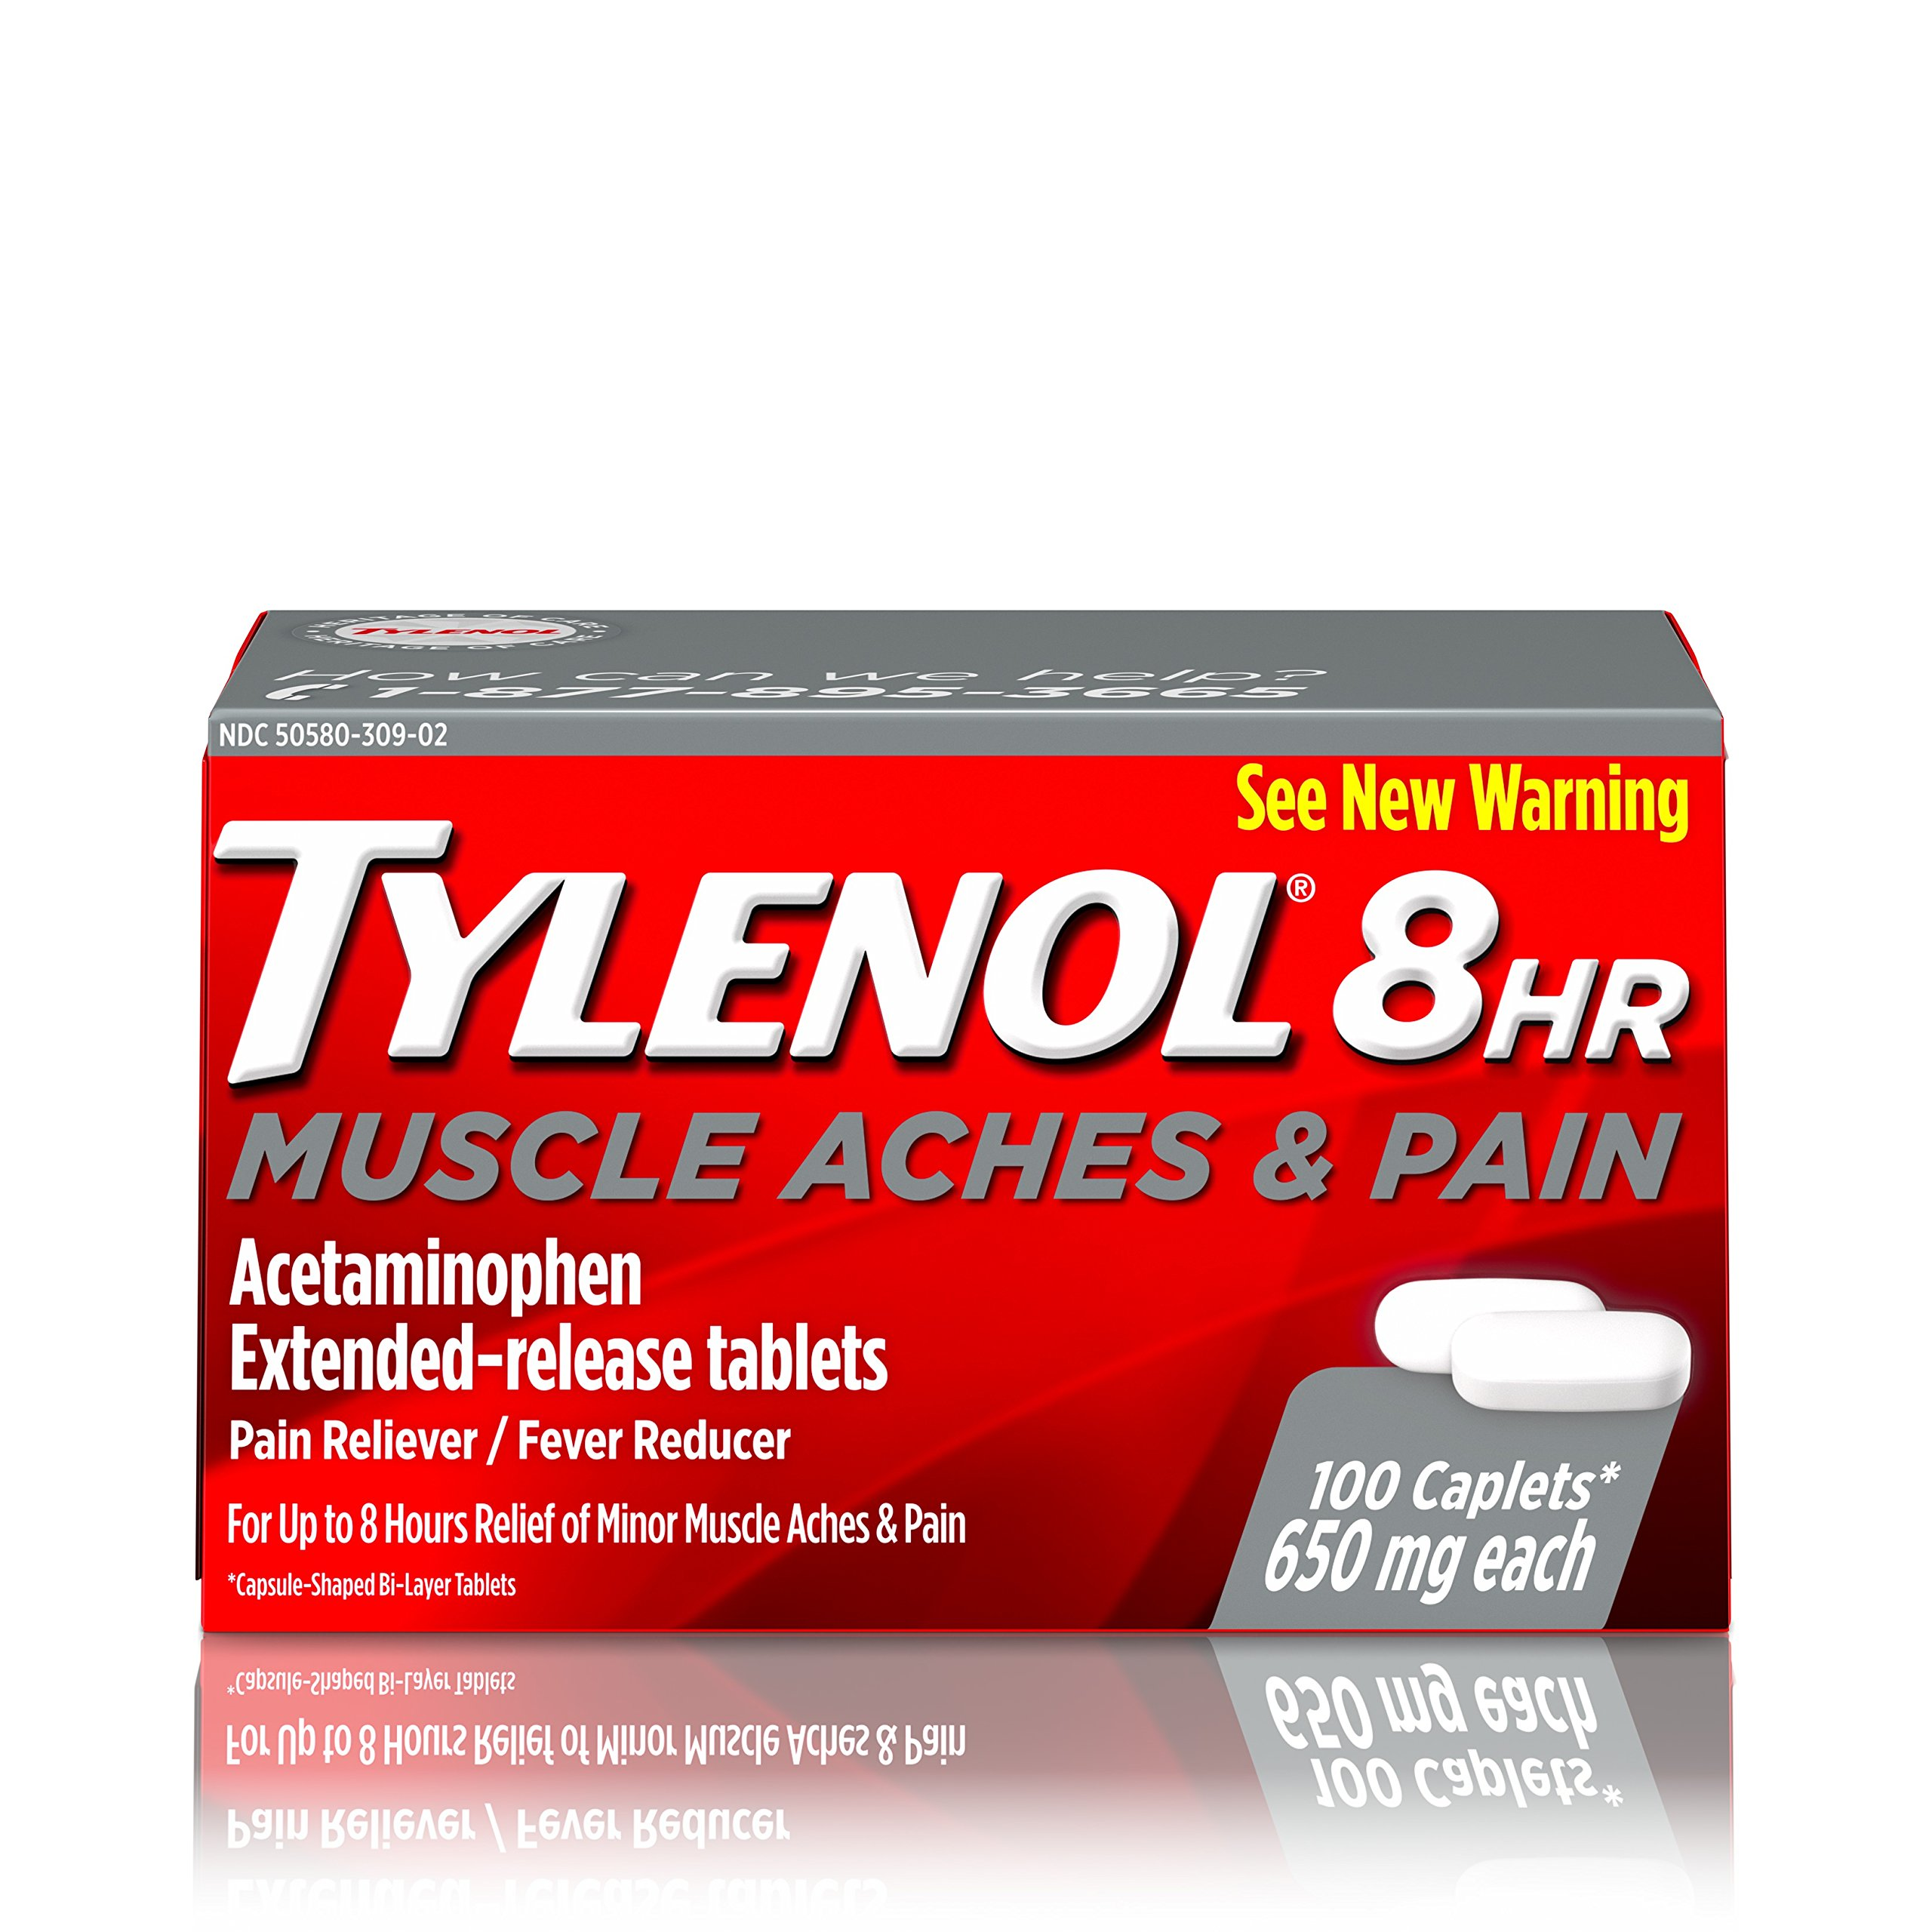 Tylenol 8 HR Muscle Aches & Pain, Pain Relief from Aches and Pain, 650 mg, 100 ct.